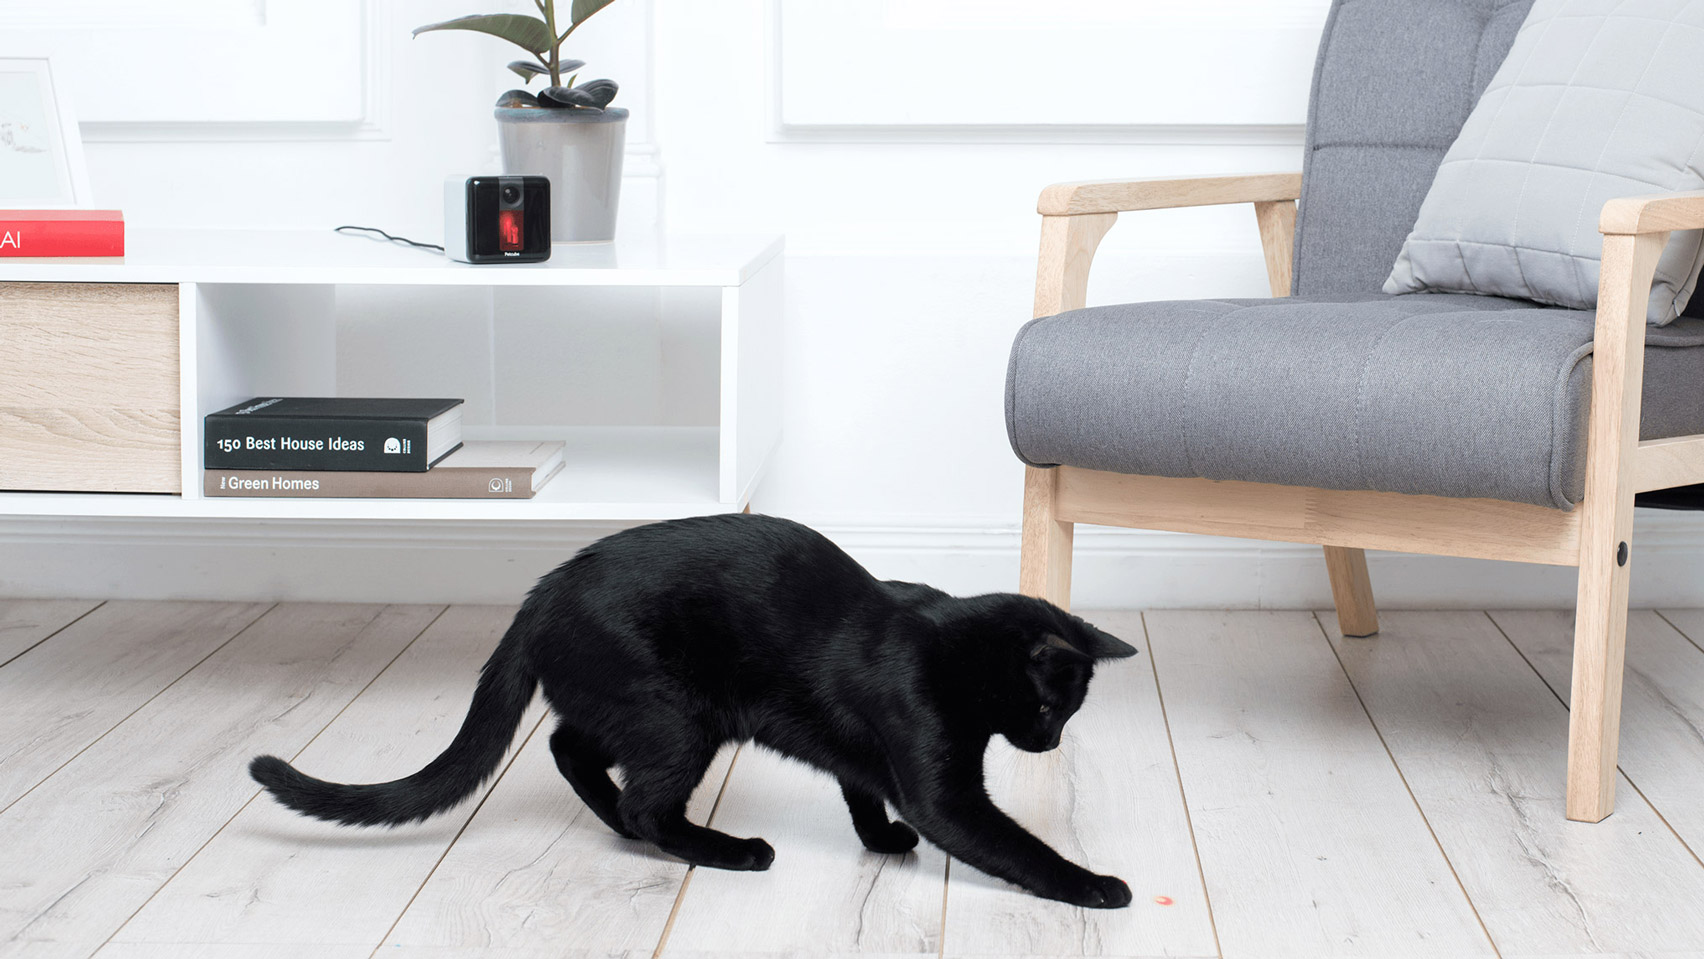 Petcube Play lets you to interact with your pet remotely from a